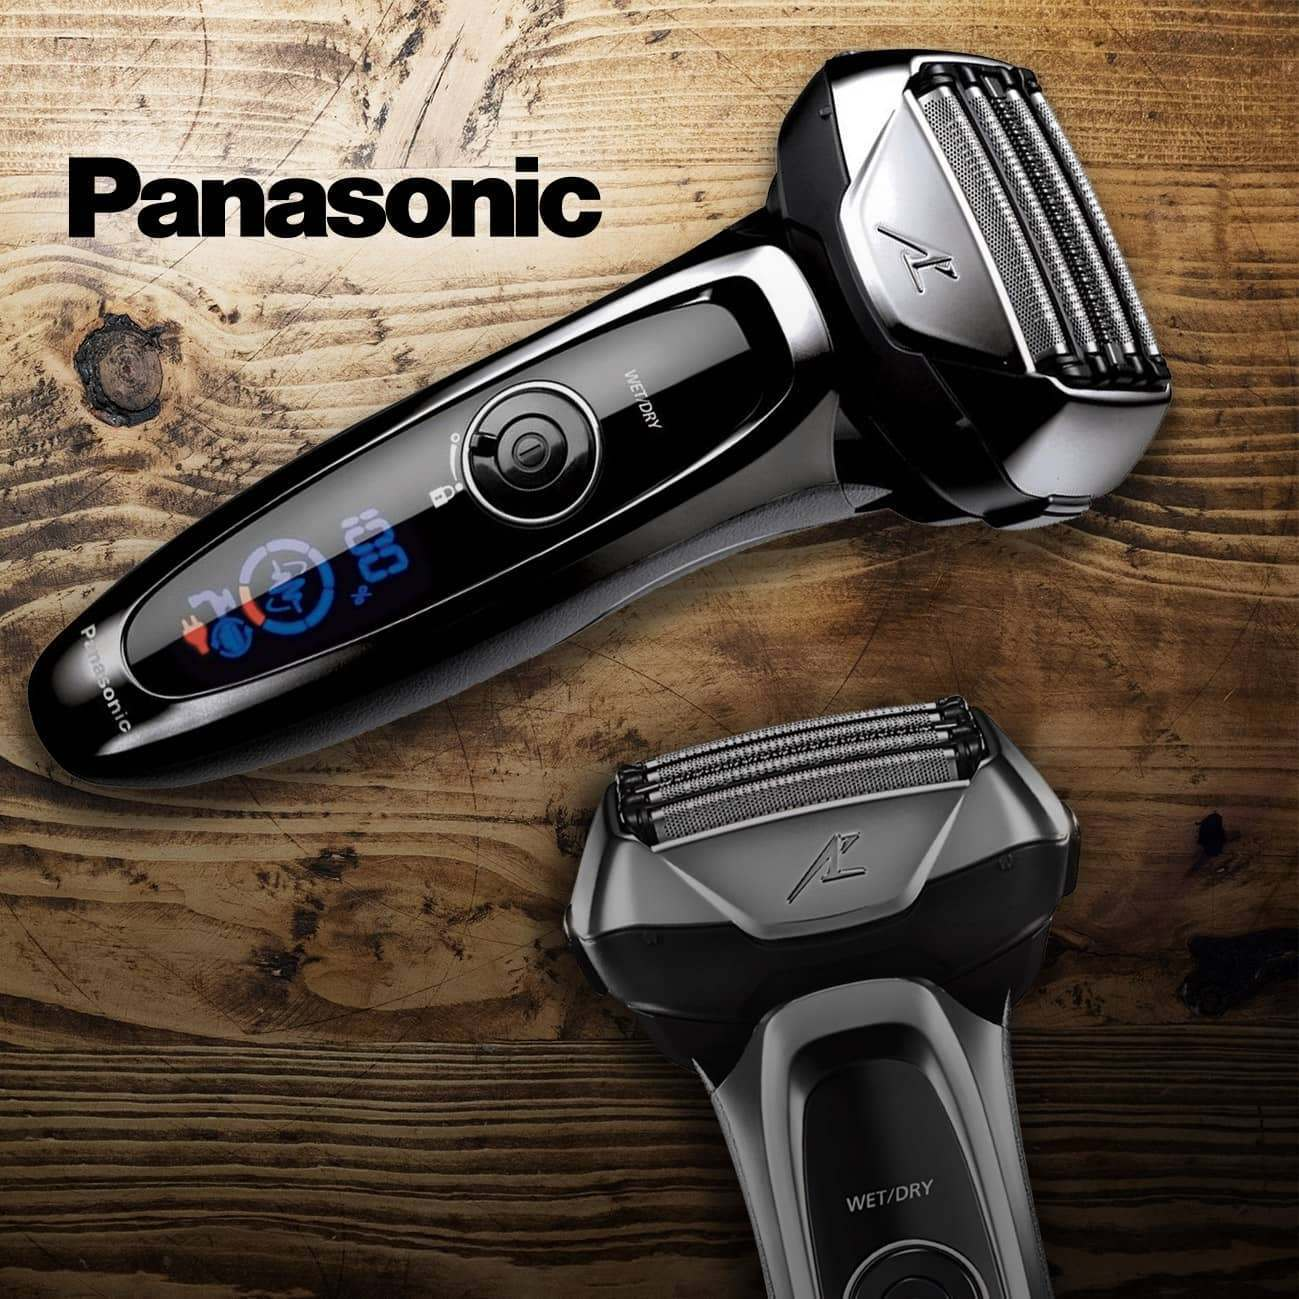 Panasonic LV65 and LV95 wet & dry 5-blade